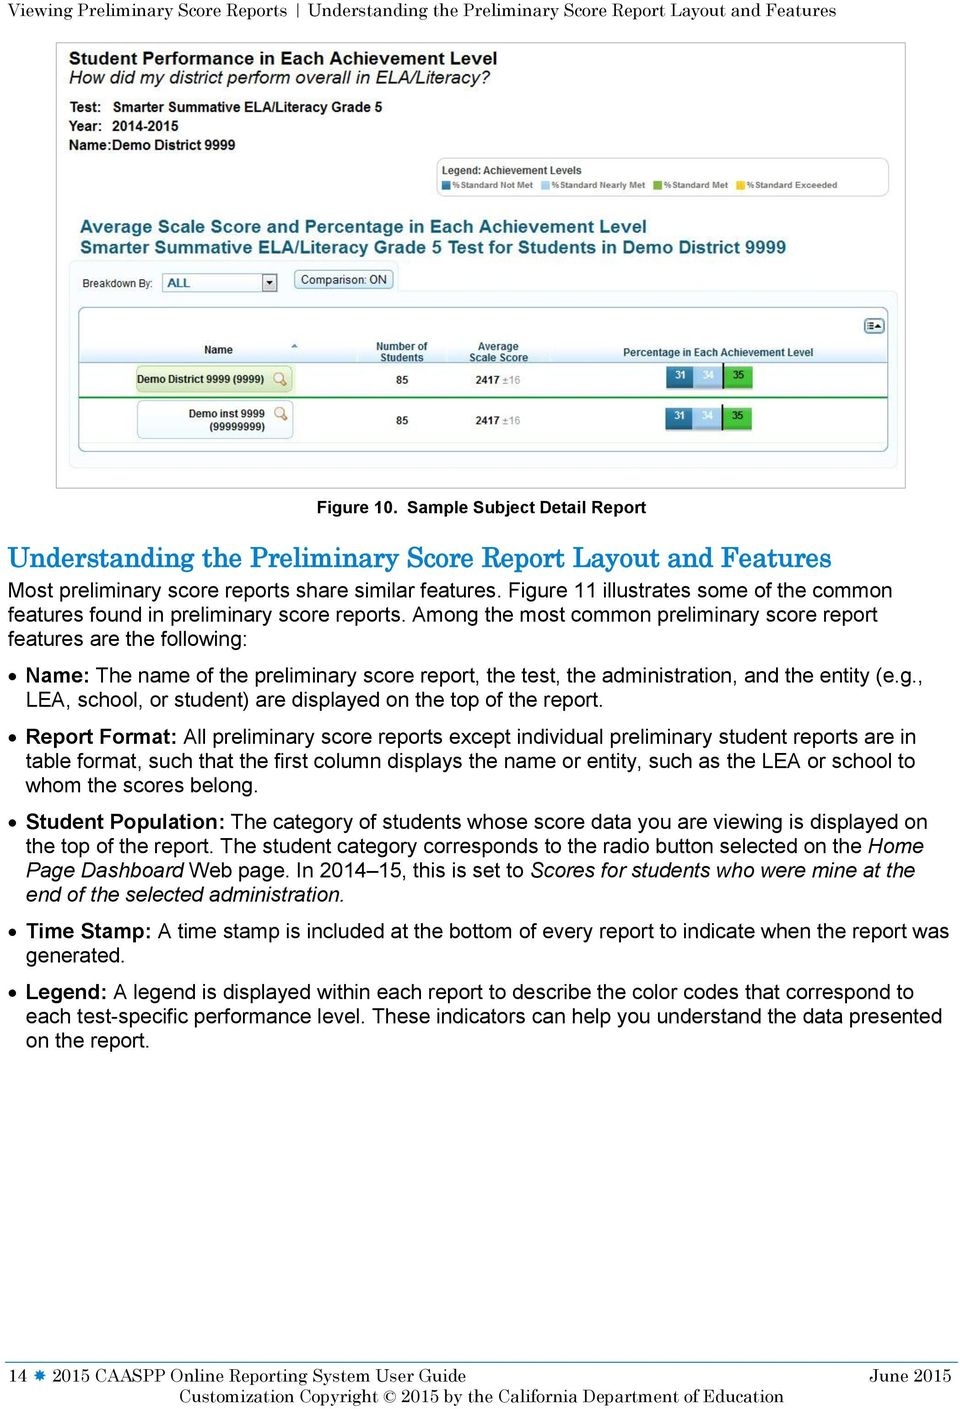 Figure 11 illustrates some of the common features found in preliminary score reports.